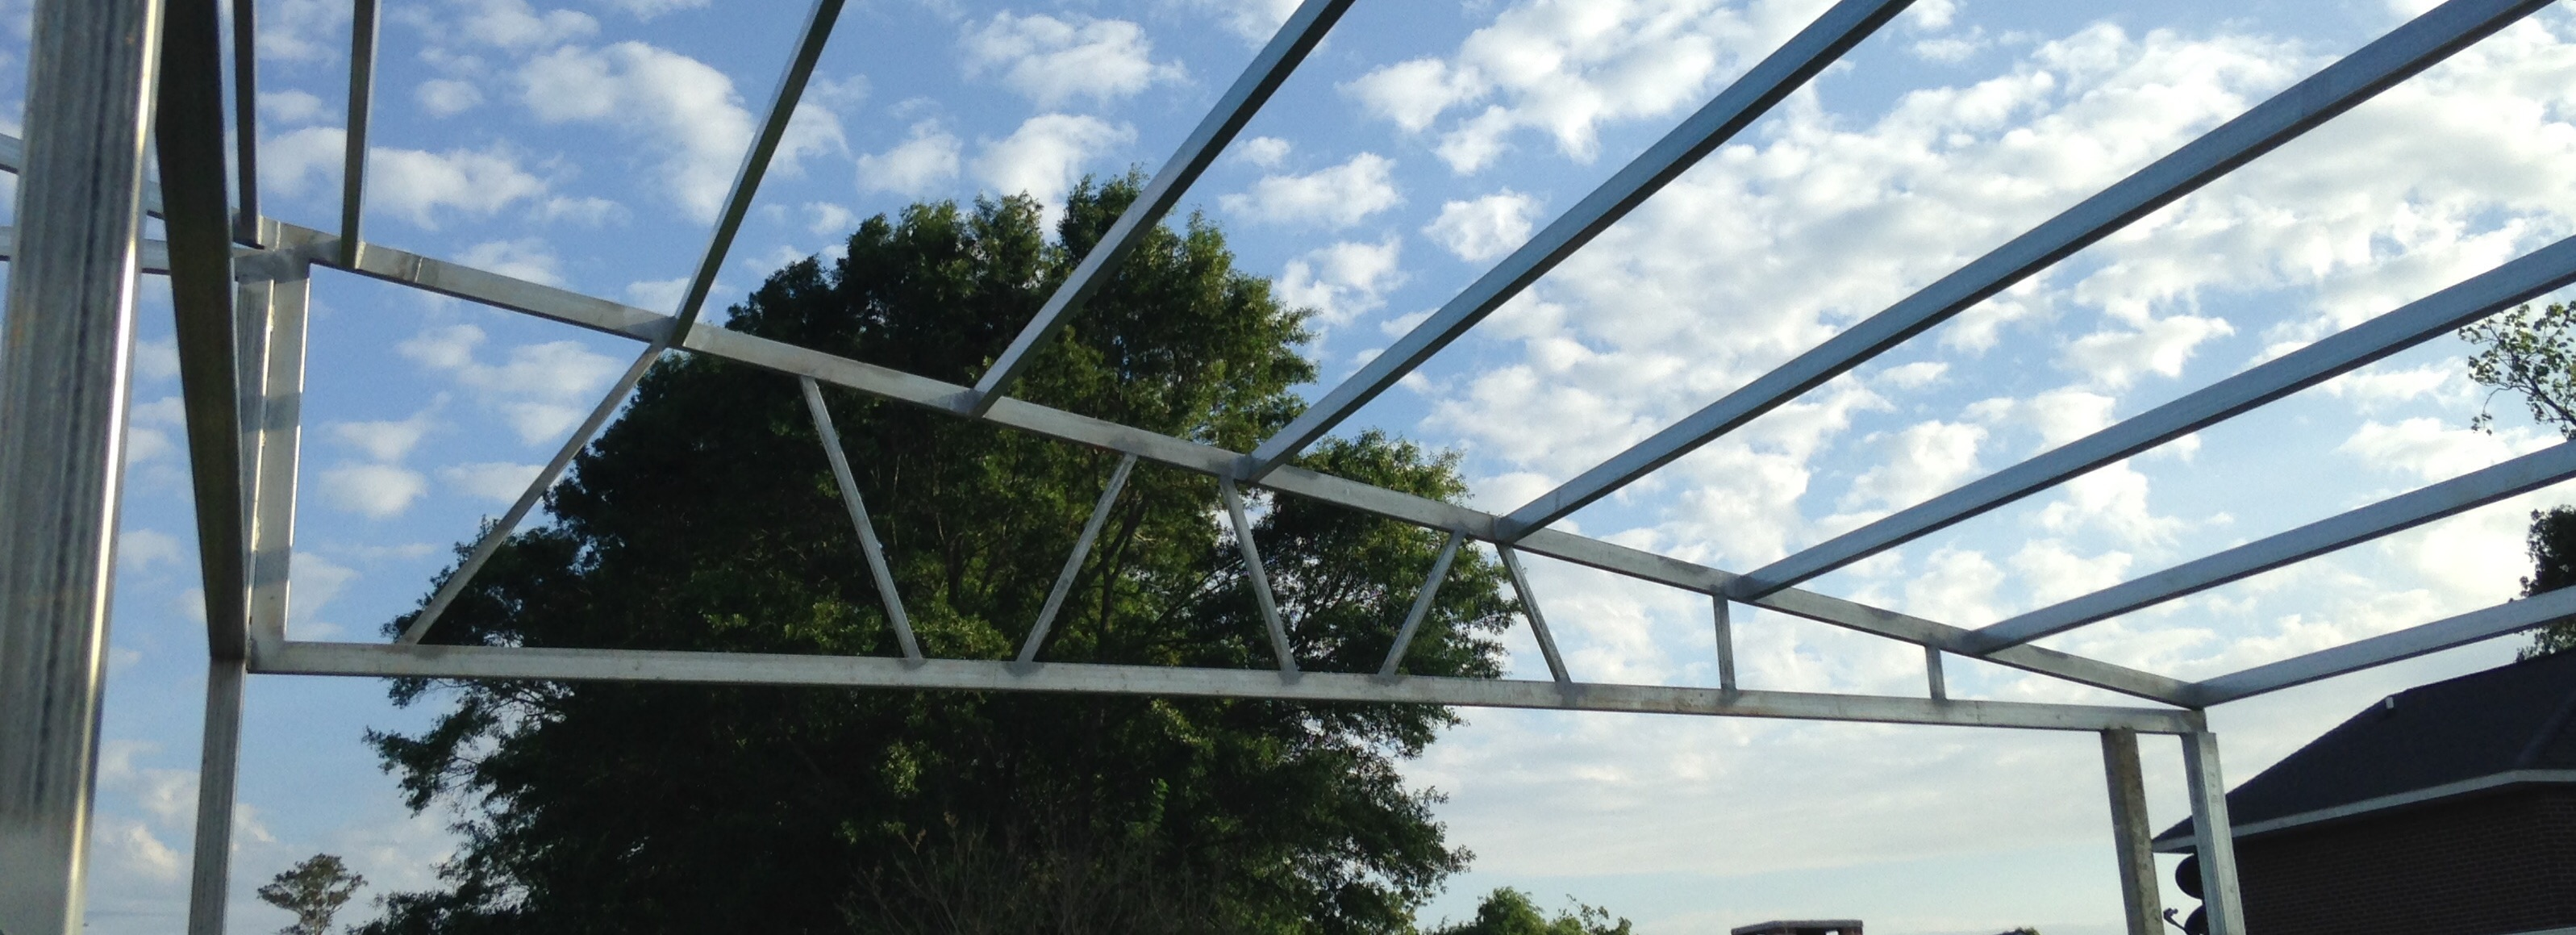 The Pipe Shop Inc Kentwood La 70444 Gt Products Gt Trusses